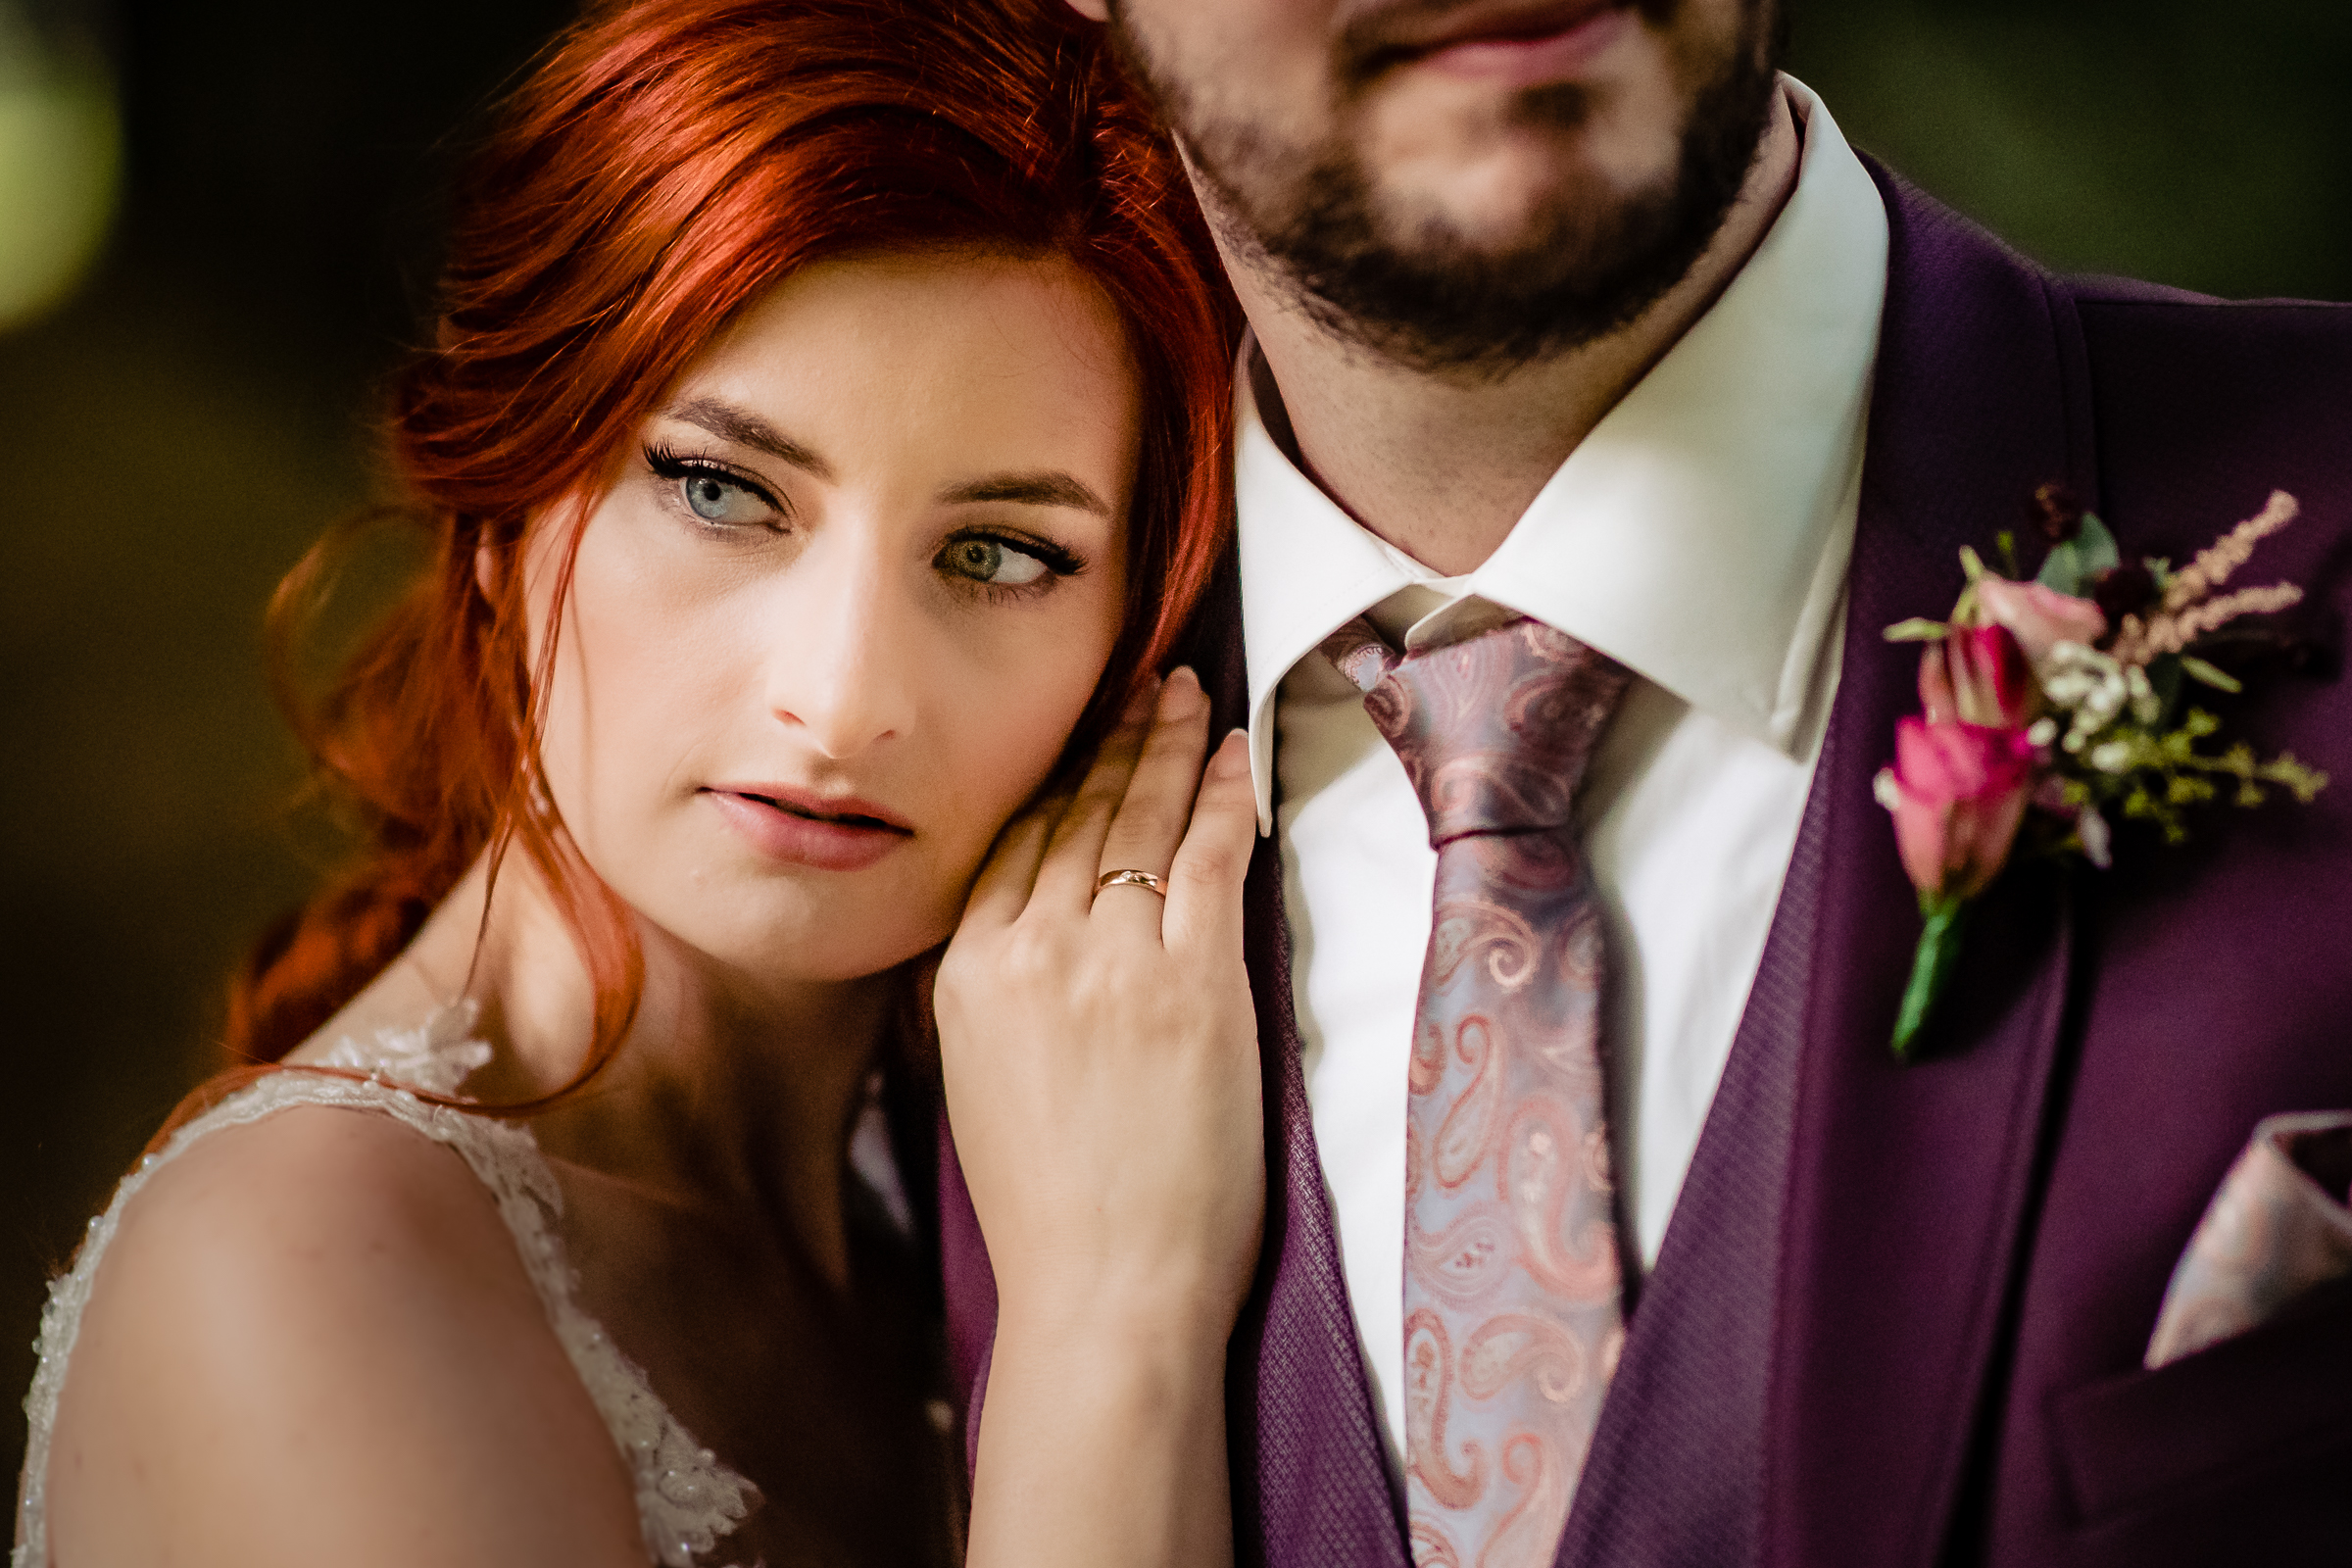 Bridal portrait on grooms shoulder -  photo by Eppel Photography